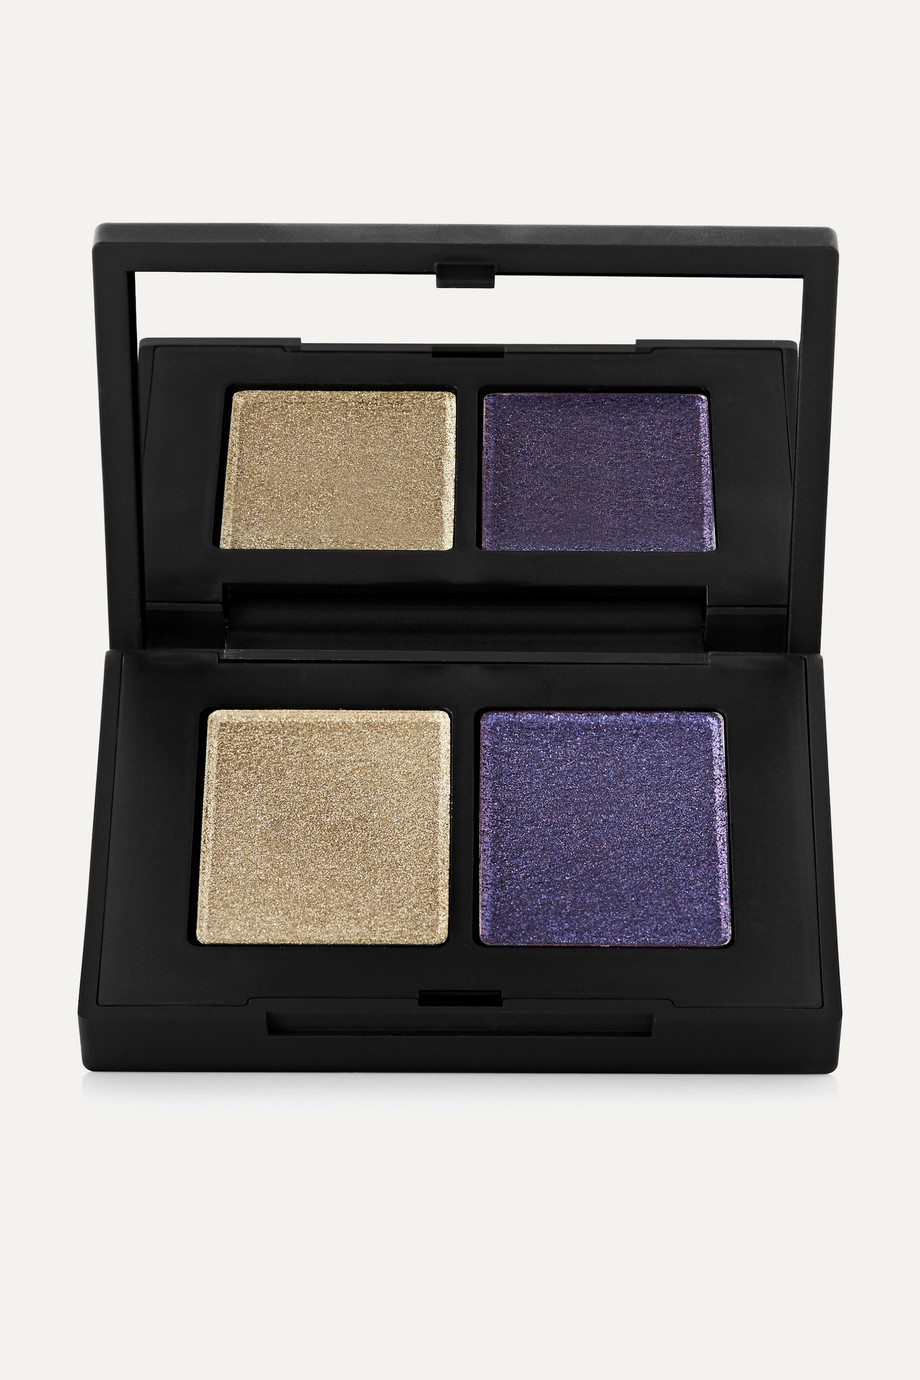 NARS Duo Eyeshadow - Kauai